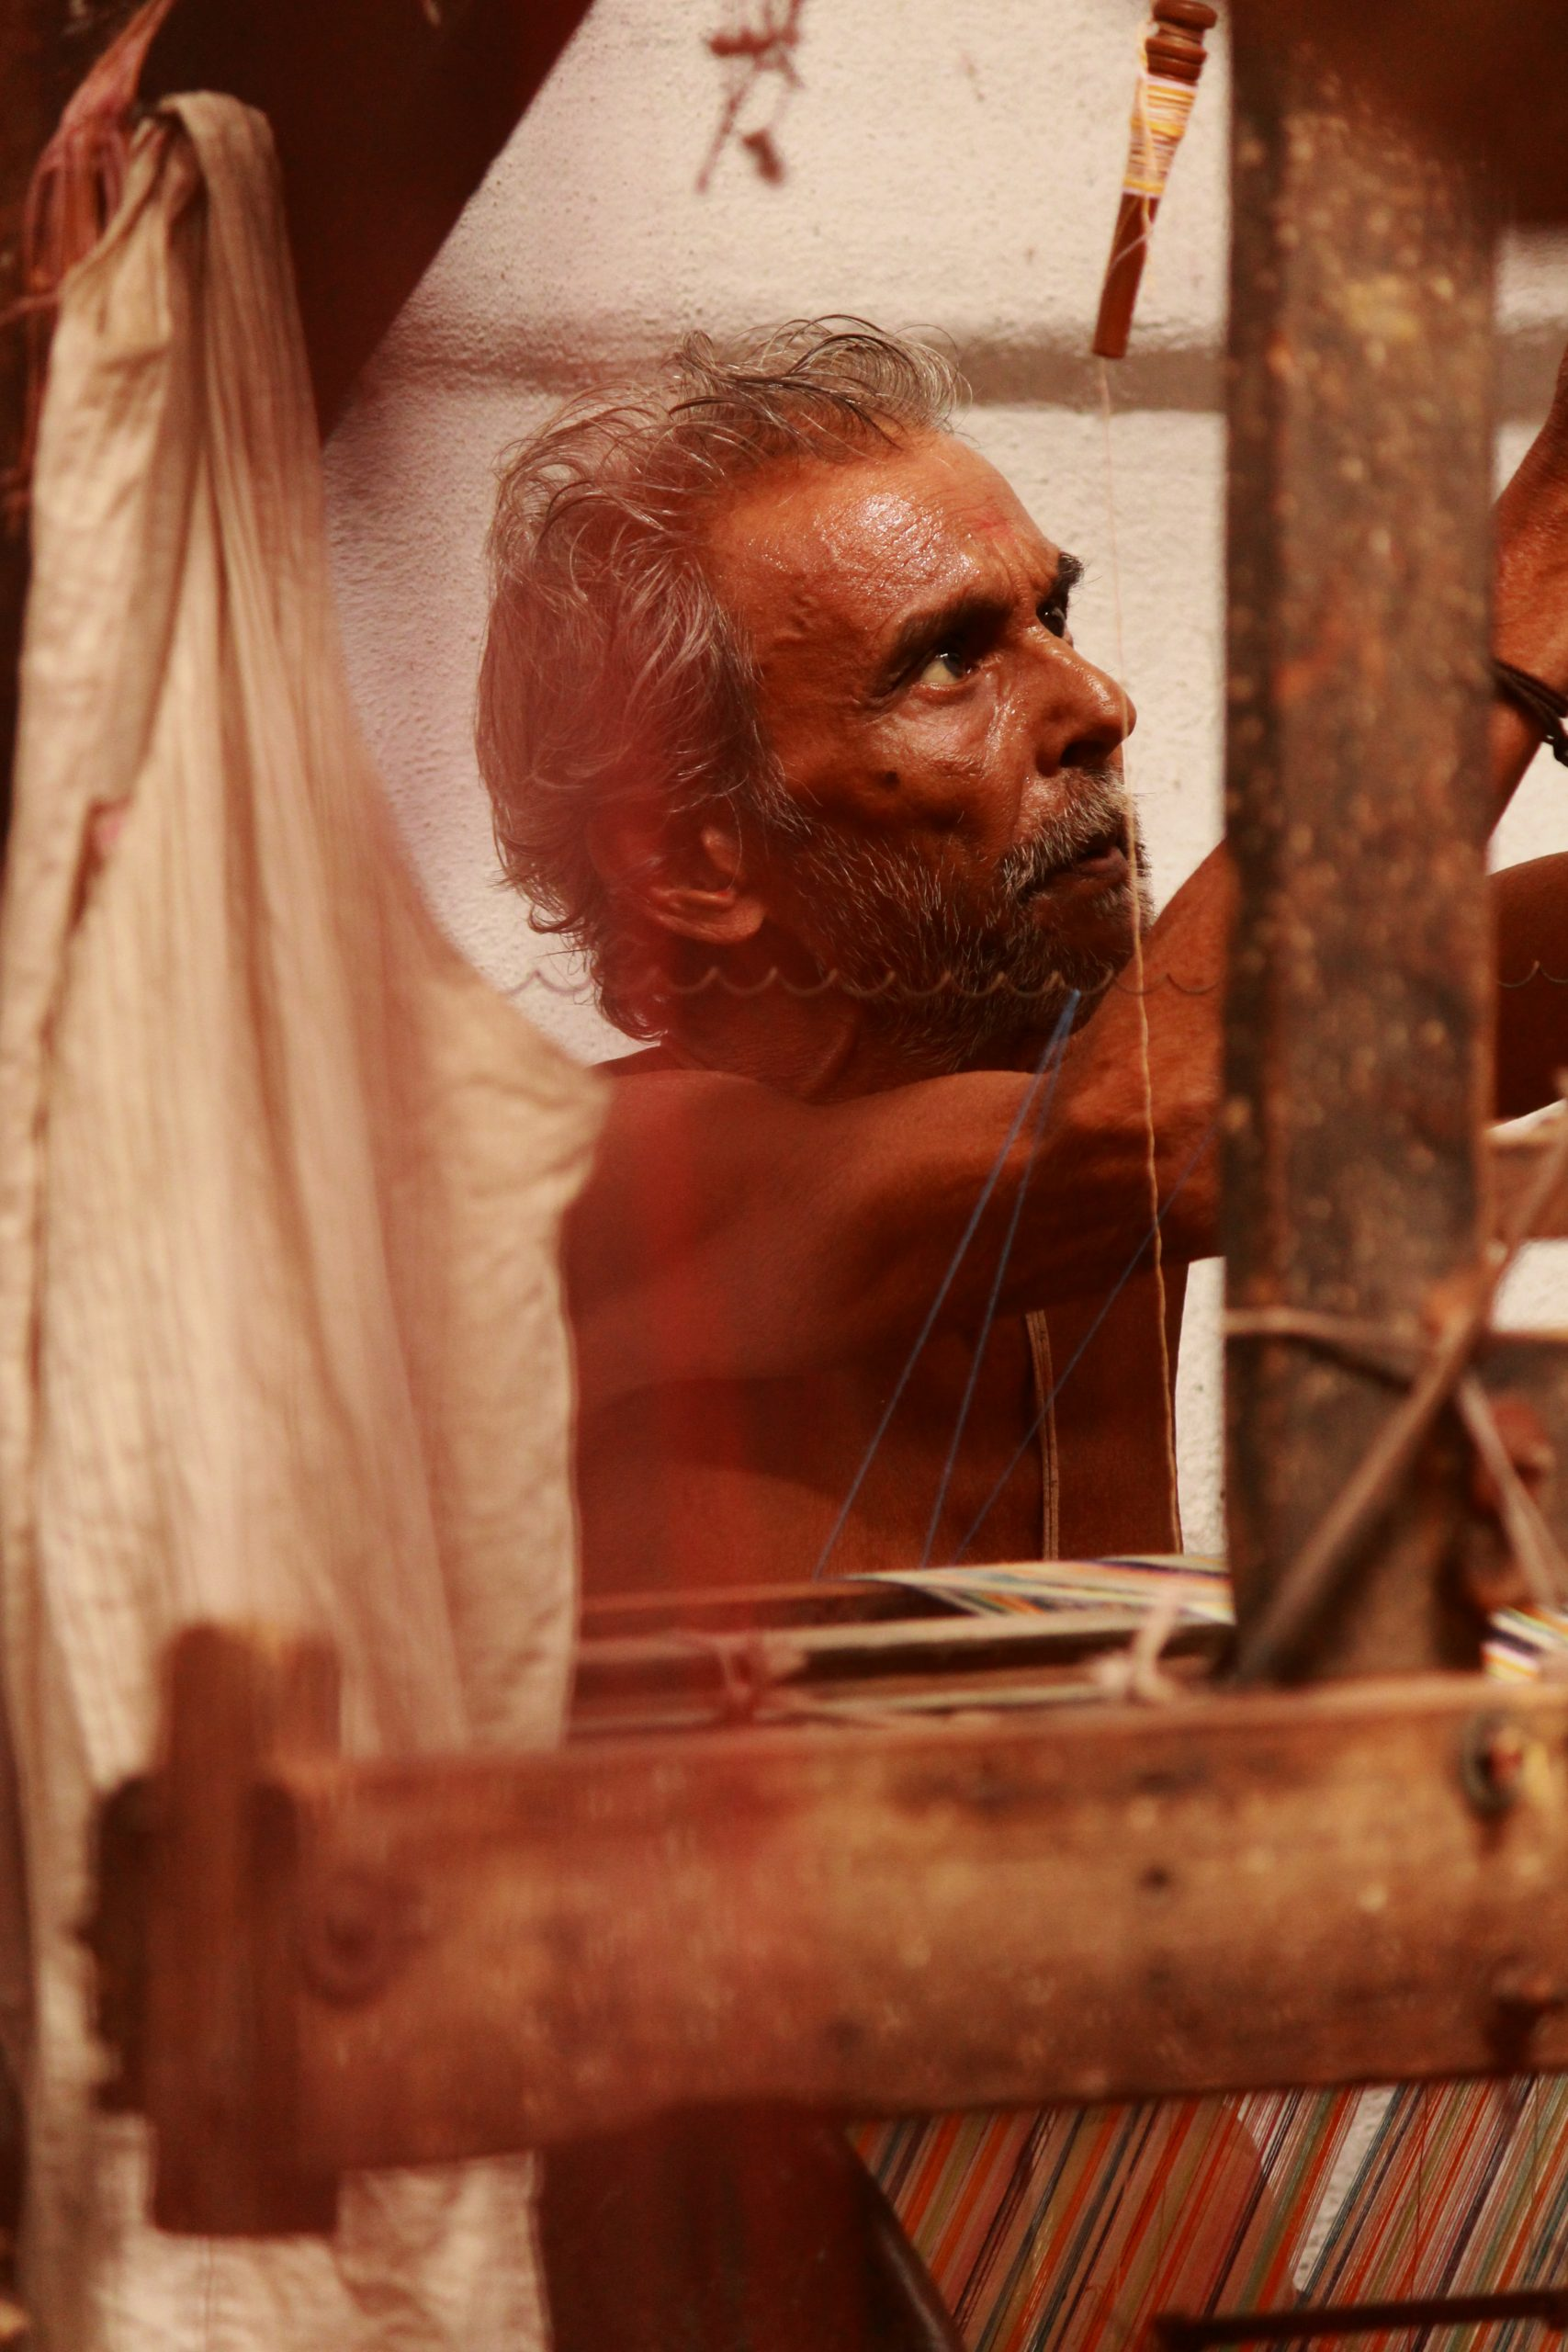 Vocal for Local…except for the handloom sector?